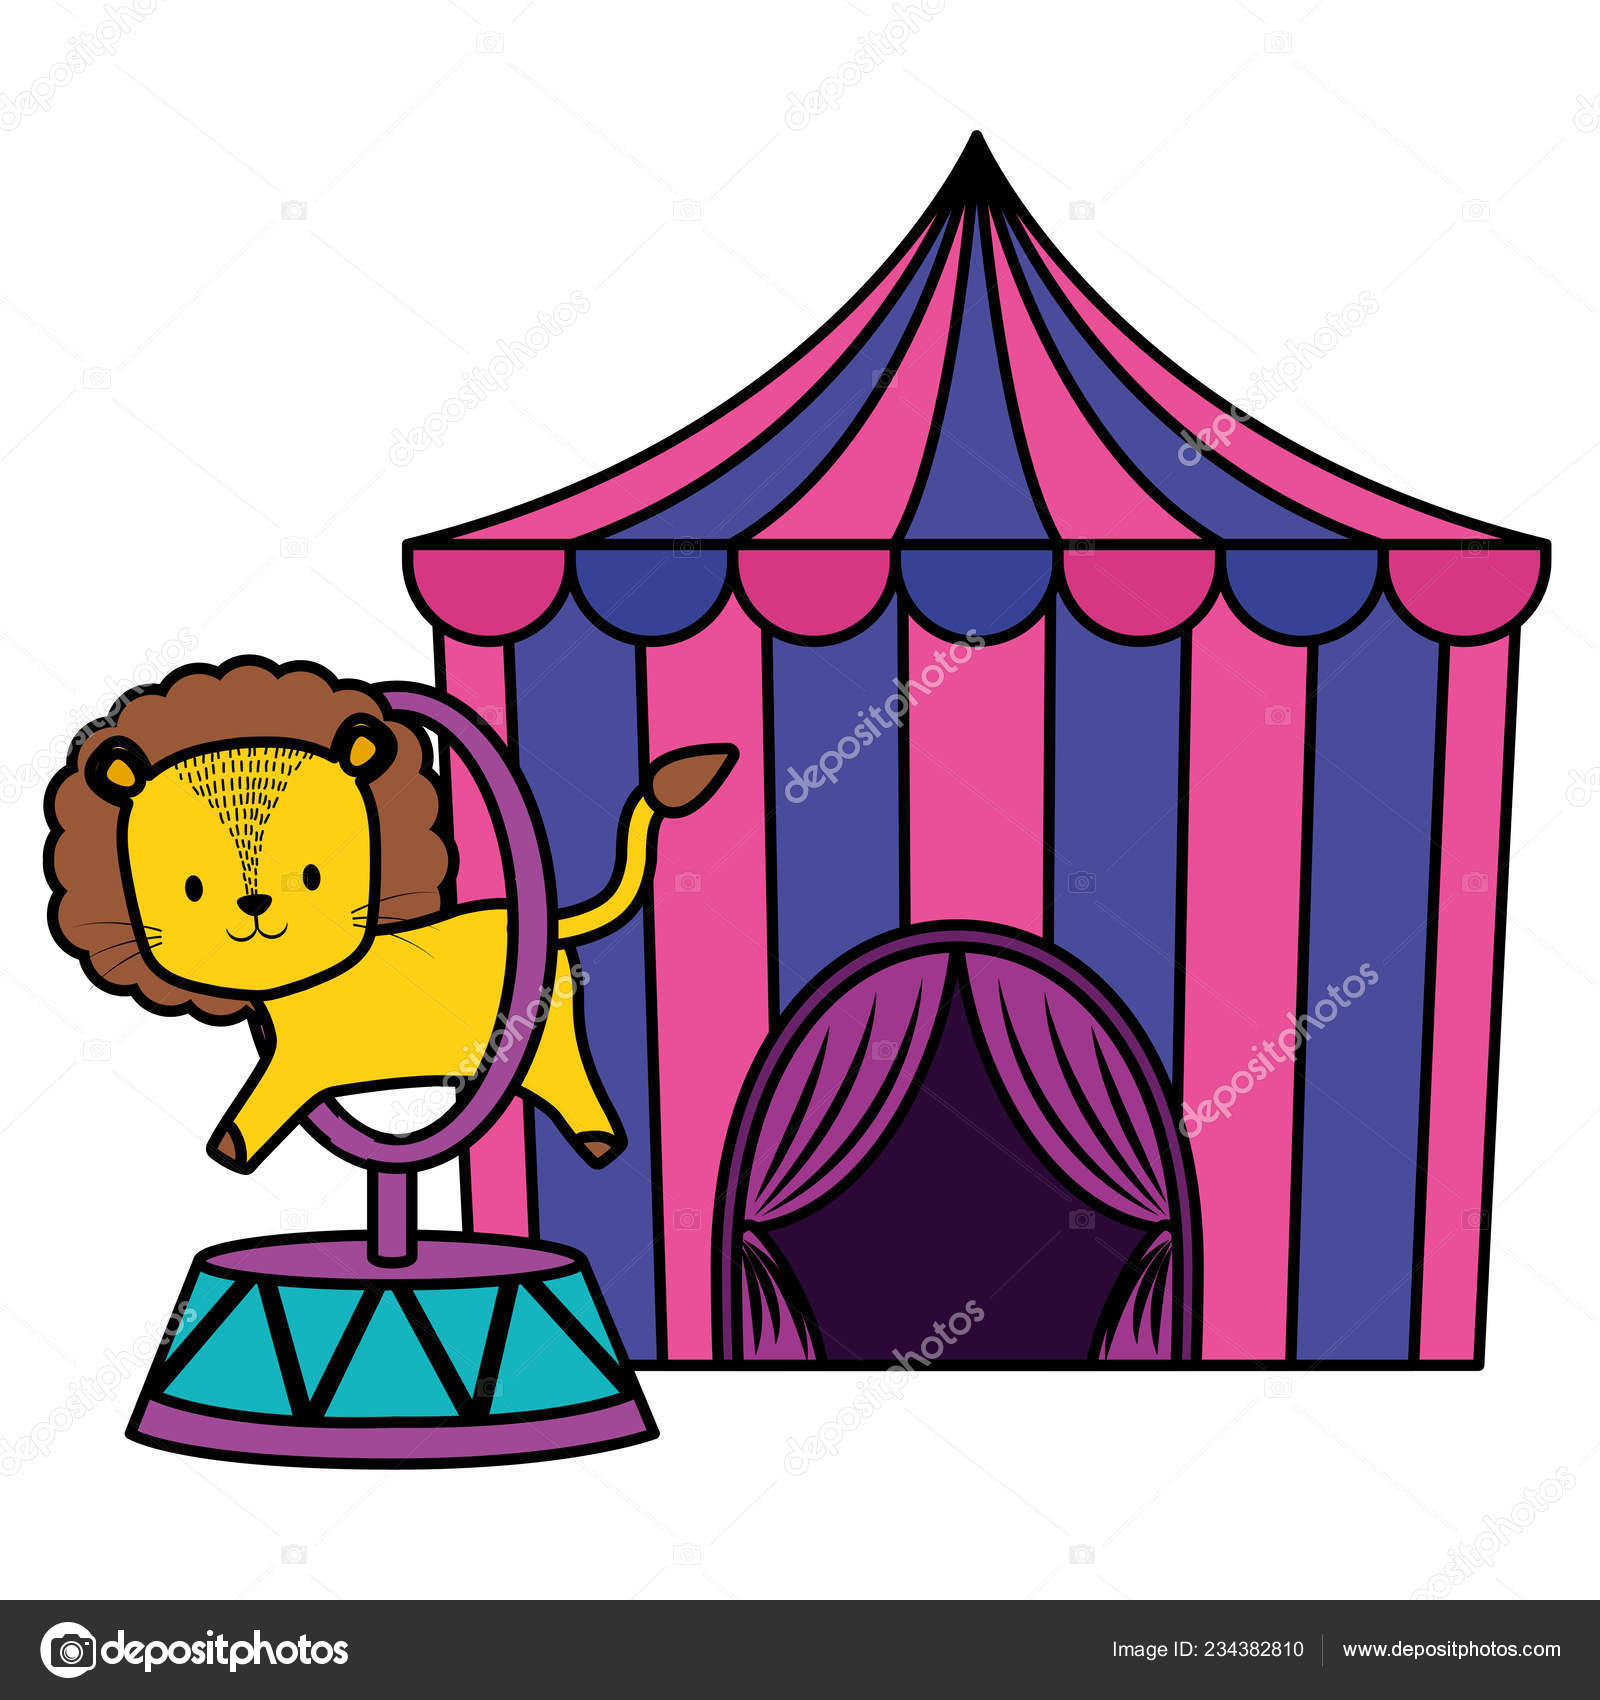 Cute circus lion jumping ring in tent vector illustration design \u2014 Vector by ...  sc 1 st  Depositphotos & cute circus lion jumping ring in tent \u2014 Stock Vector © djv #234382810